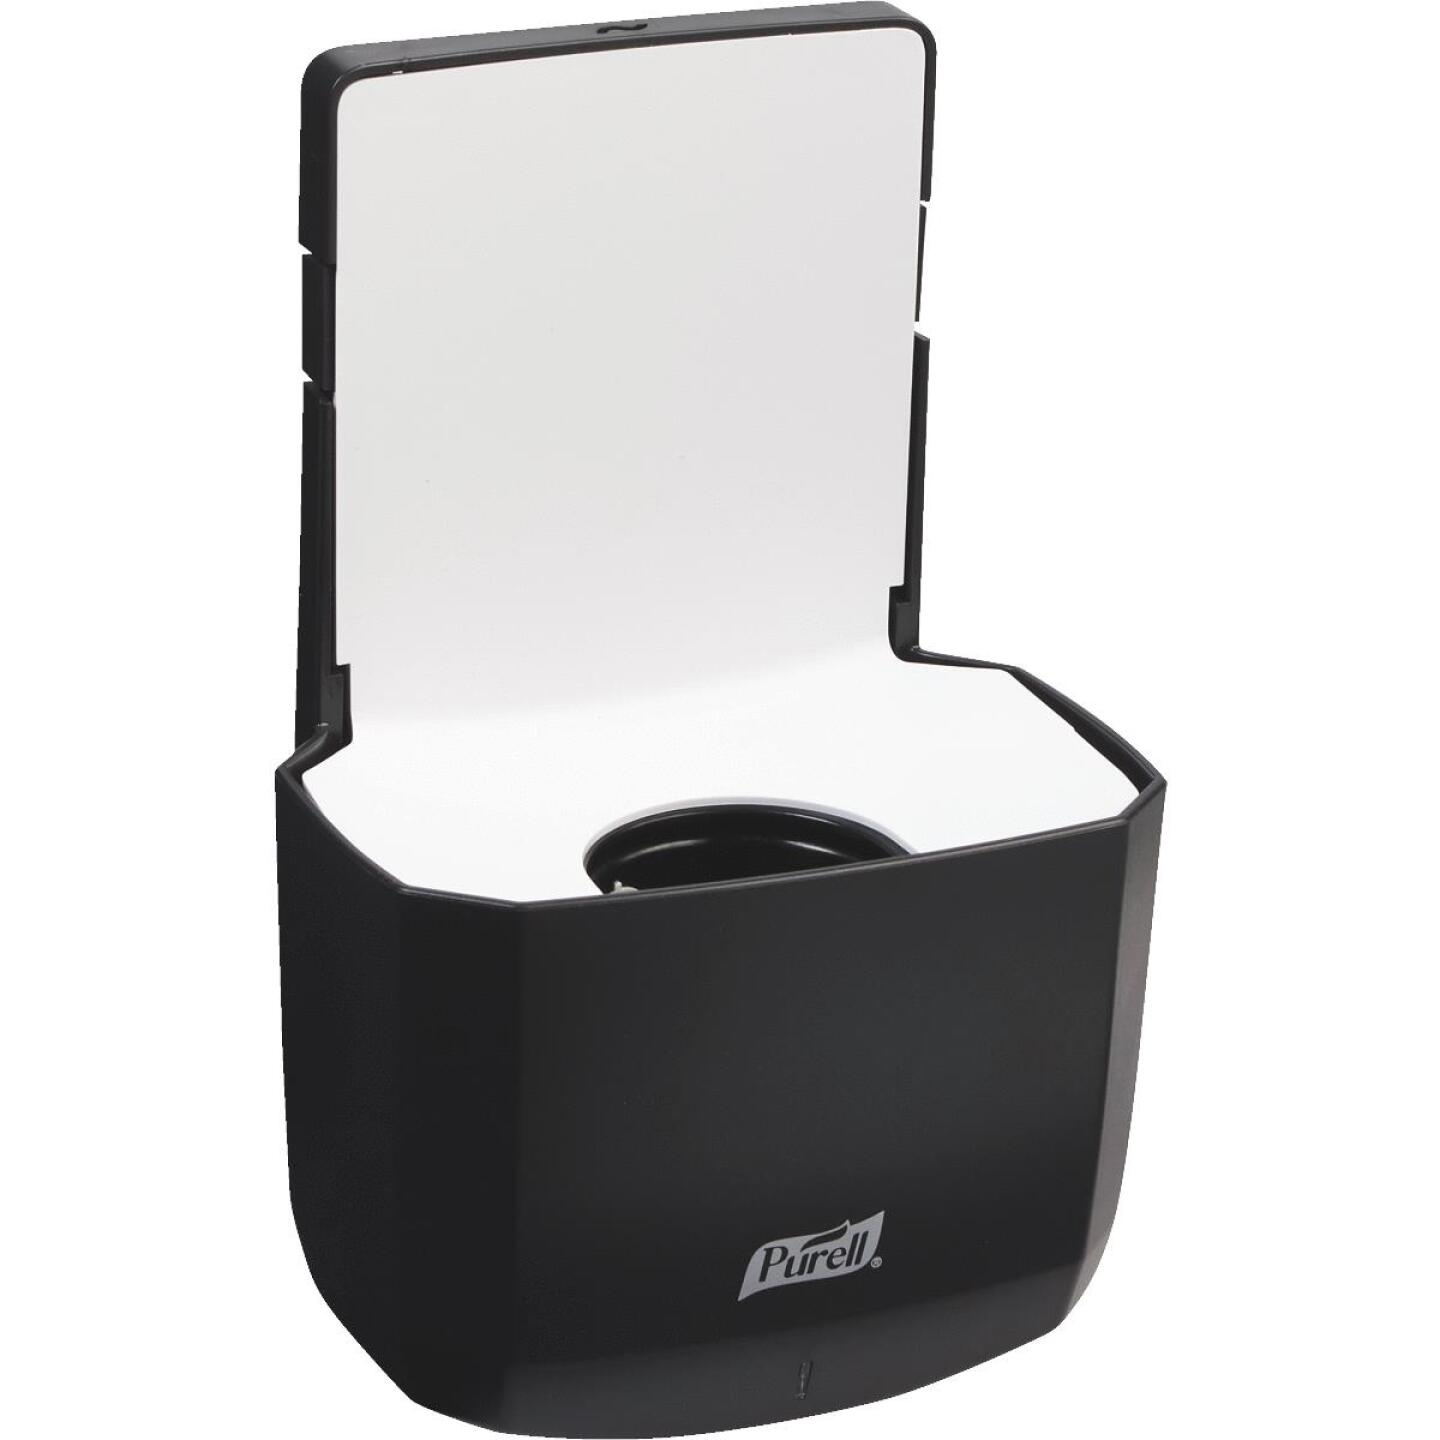 PURELL ES6 Black Touch-Free 1200mL Soap Dispenser Image 1